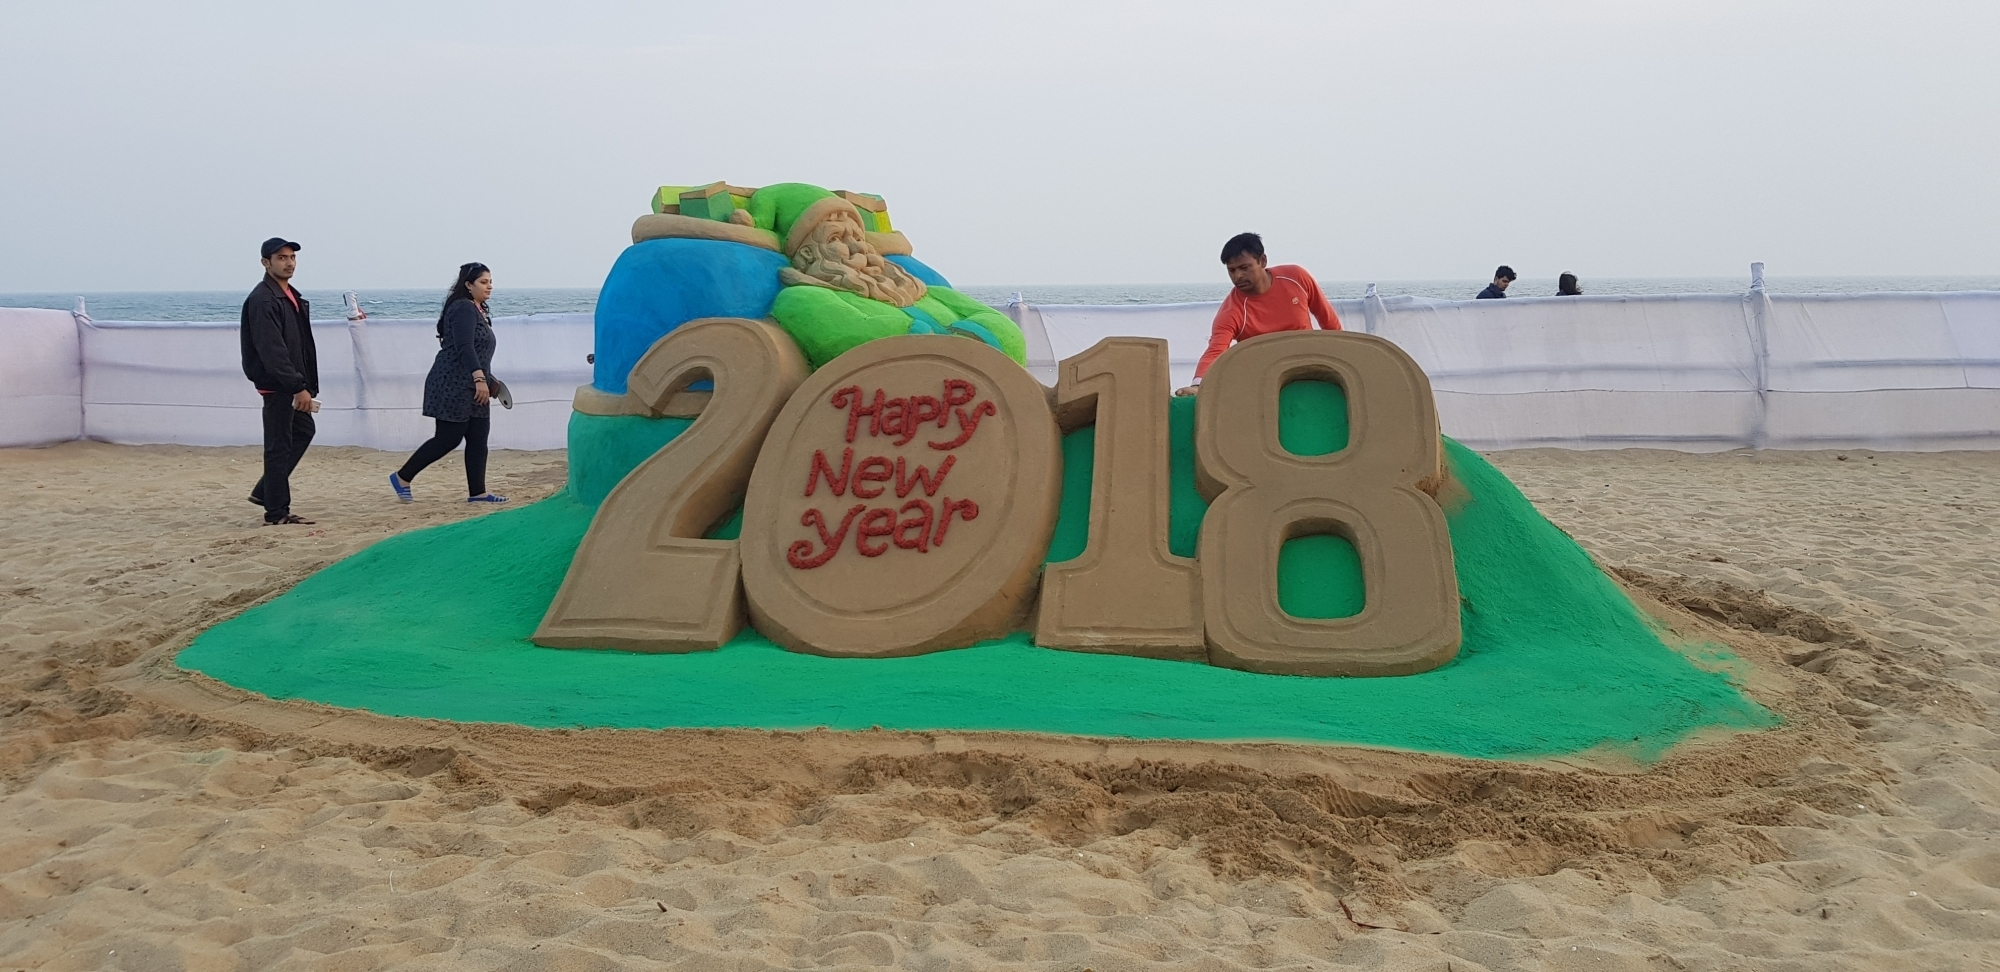 Sand Artist Manas Sahoo bids adieu to 2017 and welcomes 2018 with his sand sculpture on the New Year's Eve at Puri Beach in Odisha. (Image Credit: IANS)